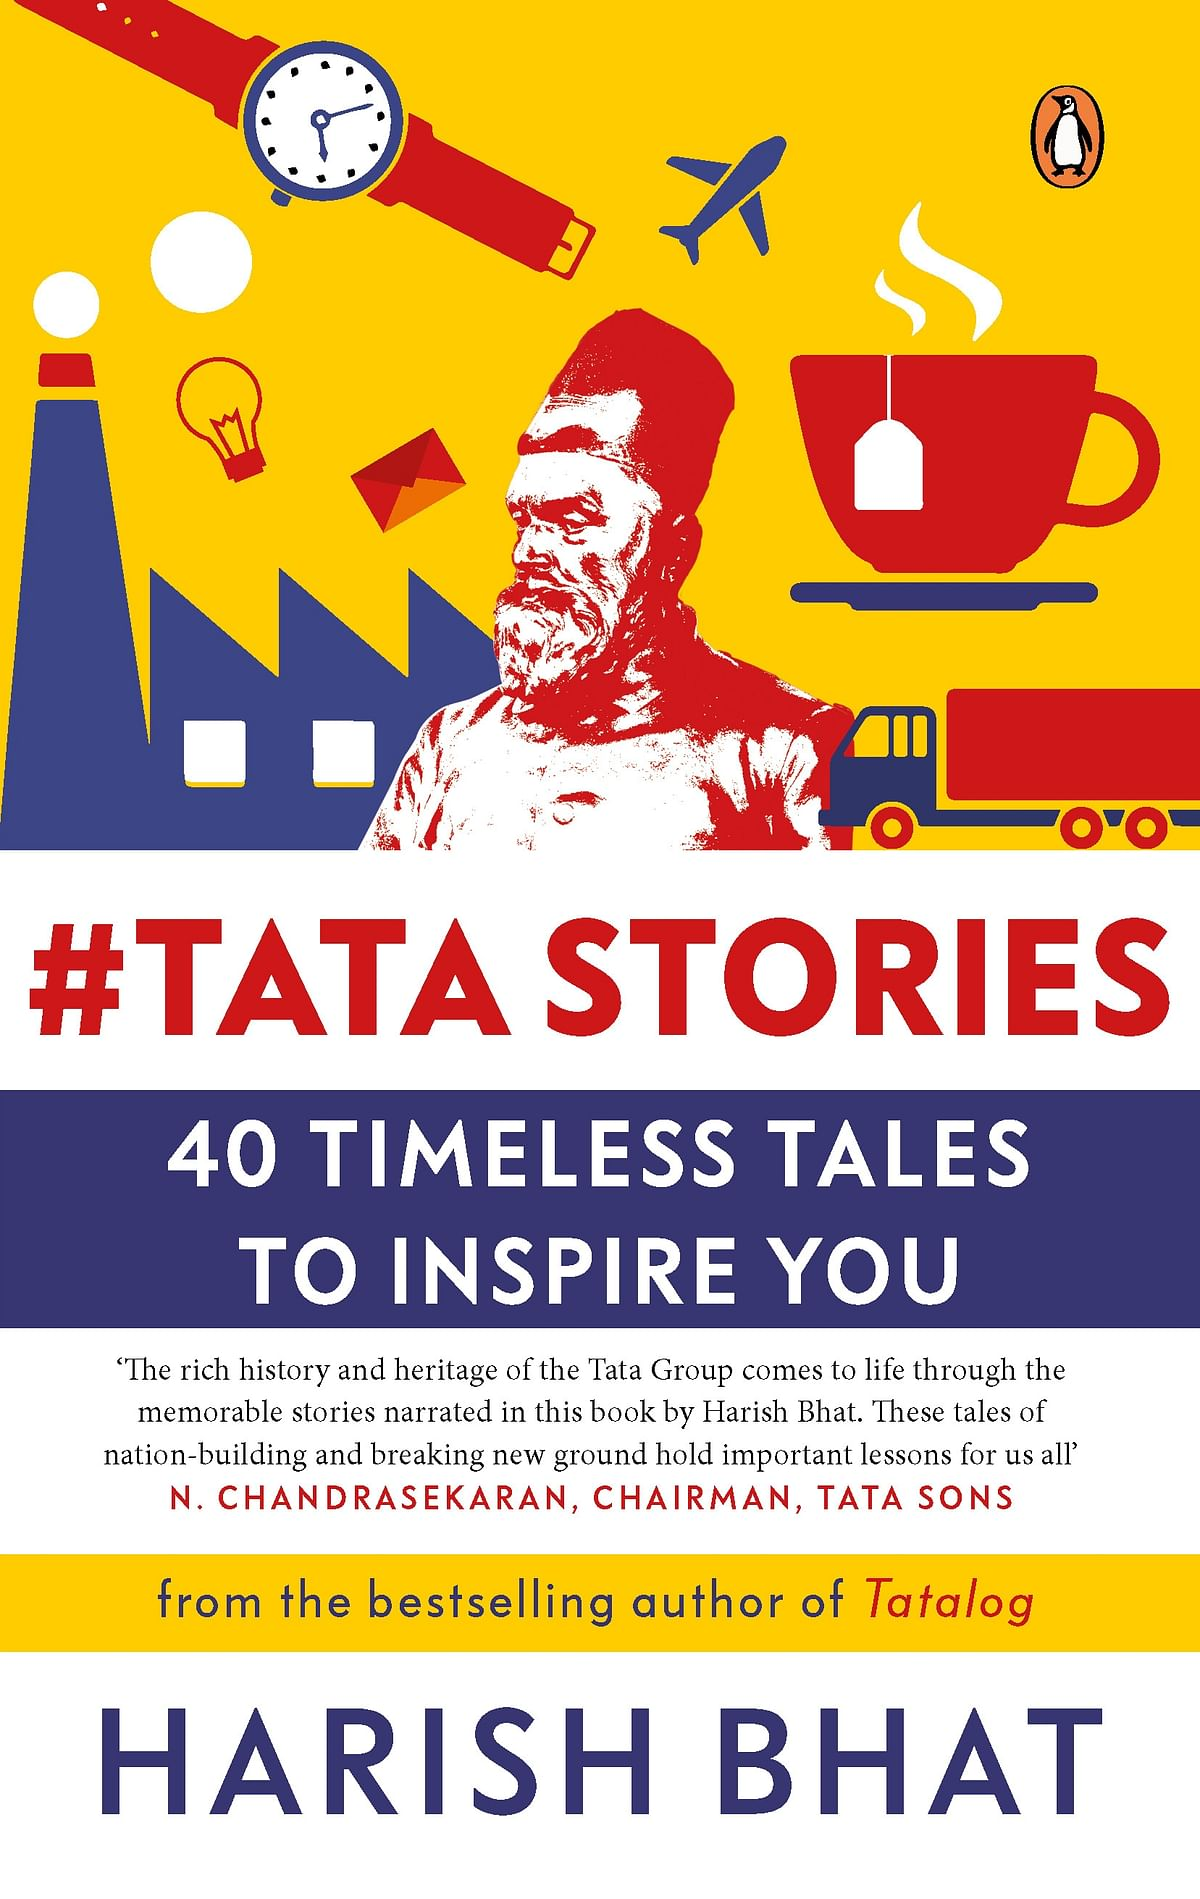 How India first went to the Olympics in 1920 & other stories: Harish Bhat, Brand Custodian of Tata Sons tells BrandSutra